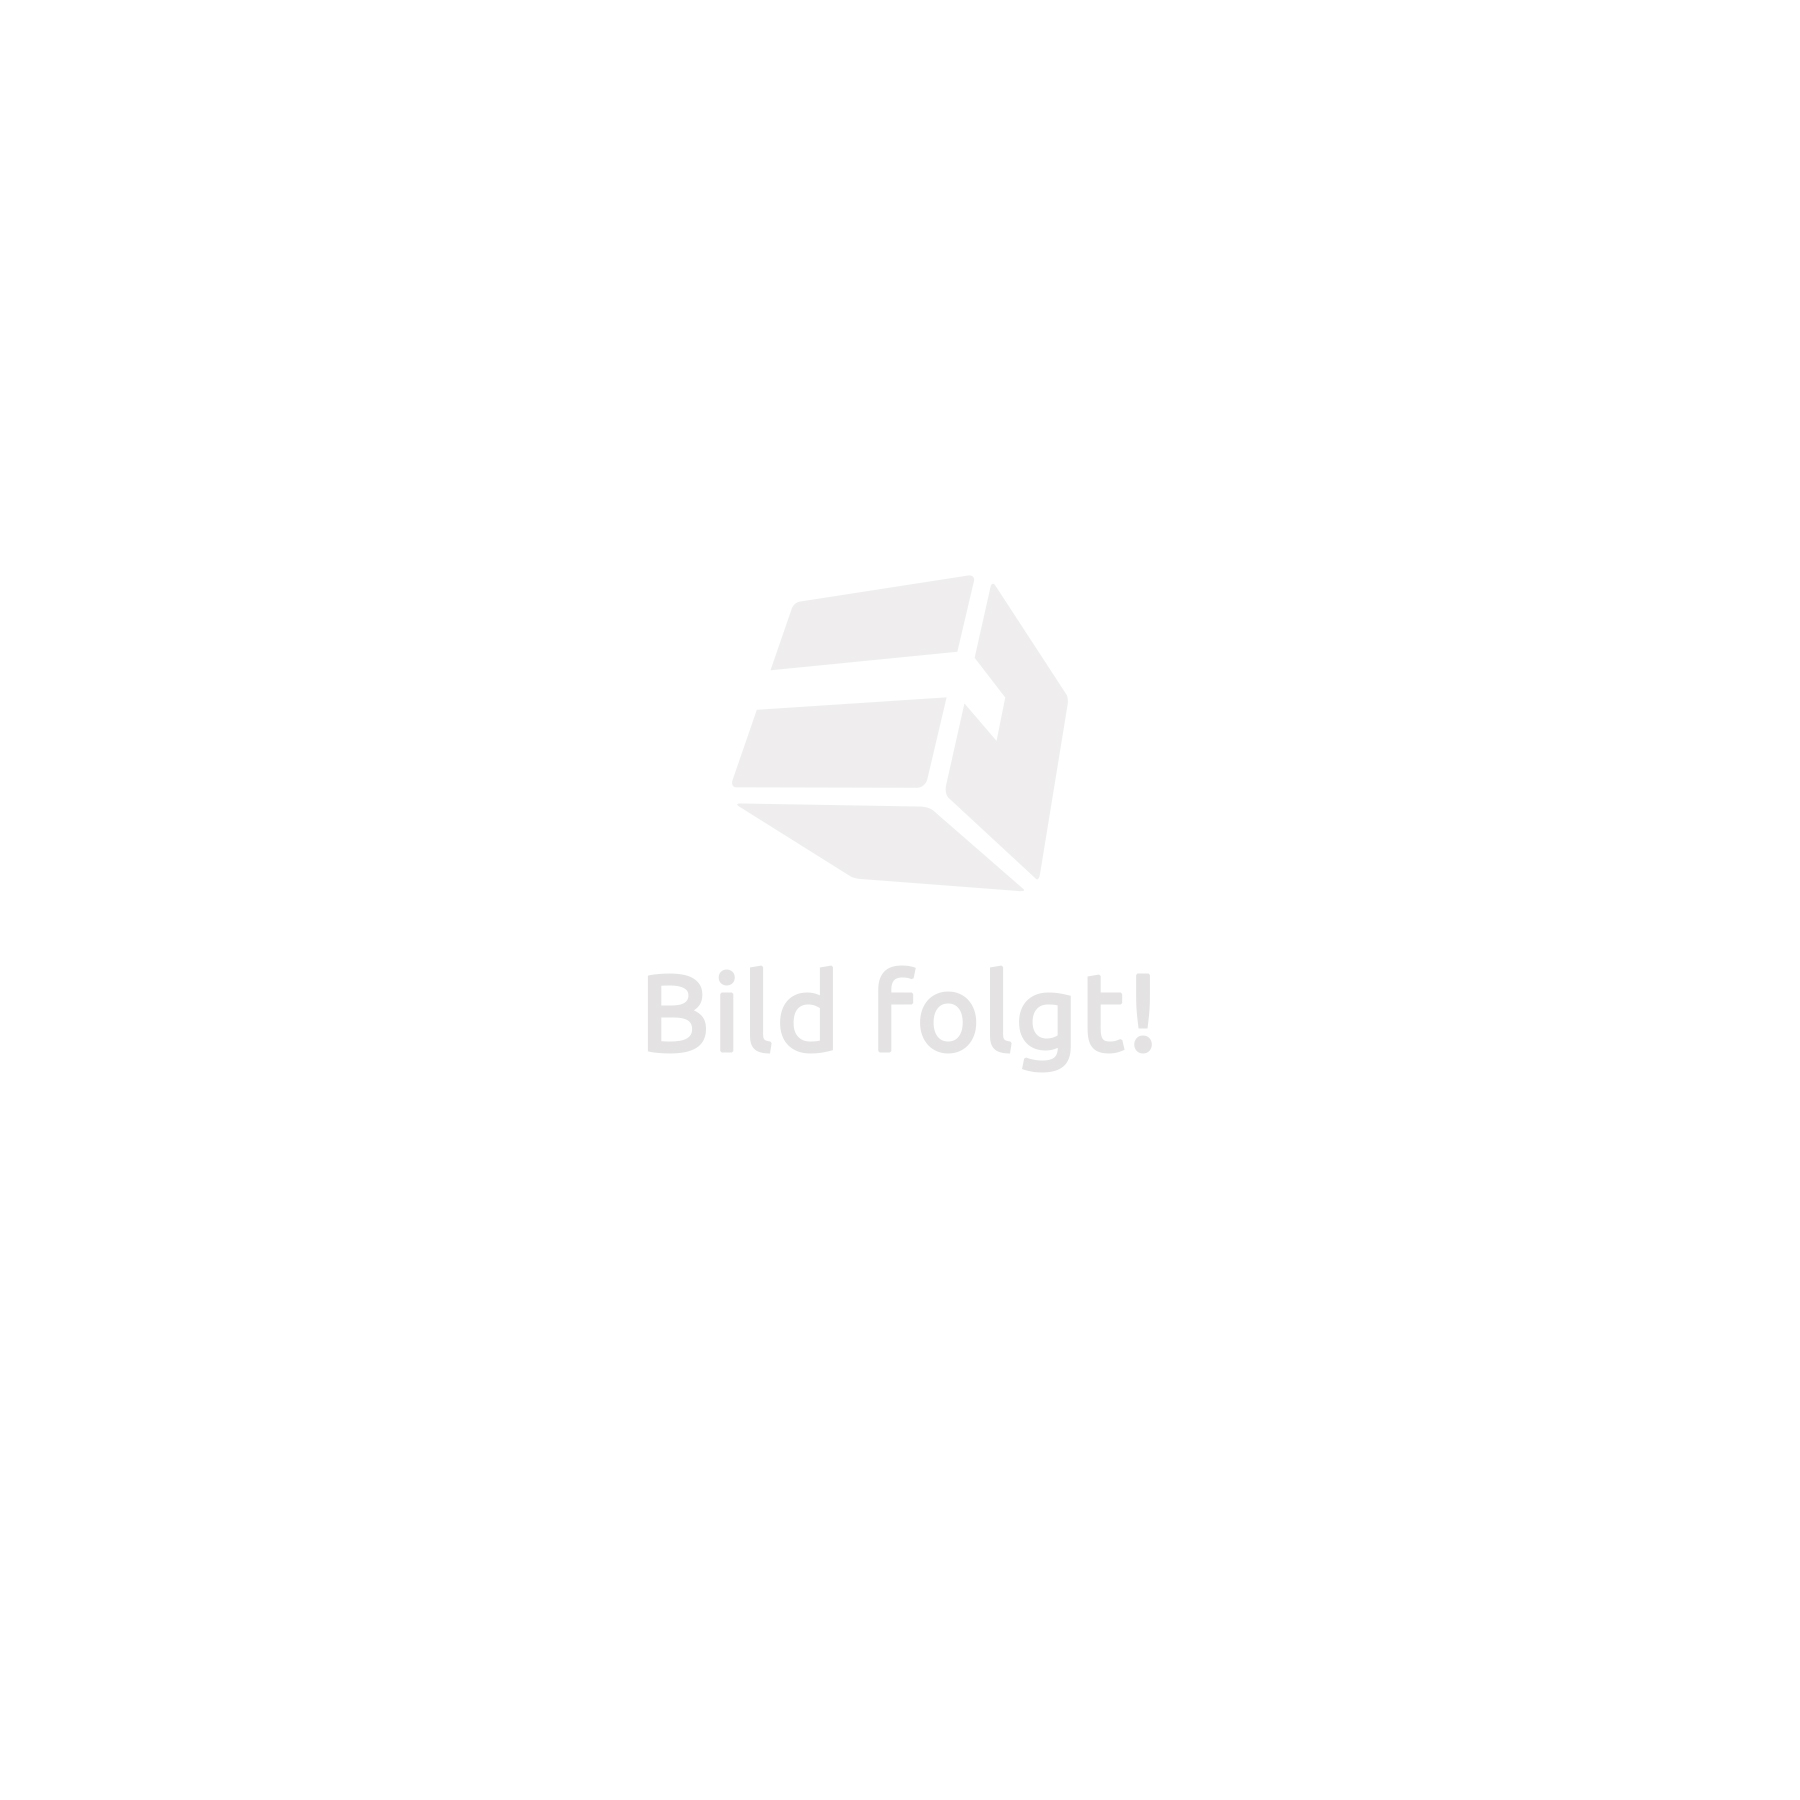 eensemble table pliante valise avec 4 tabourets camping aluminium pique nique ebay. Black Bedroom Furniture Sets. Home Design Ideas